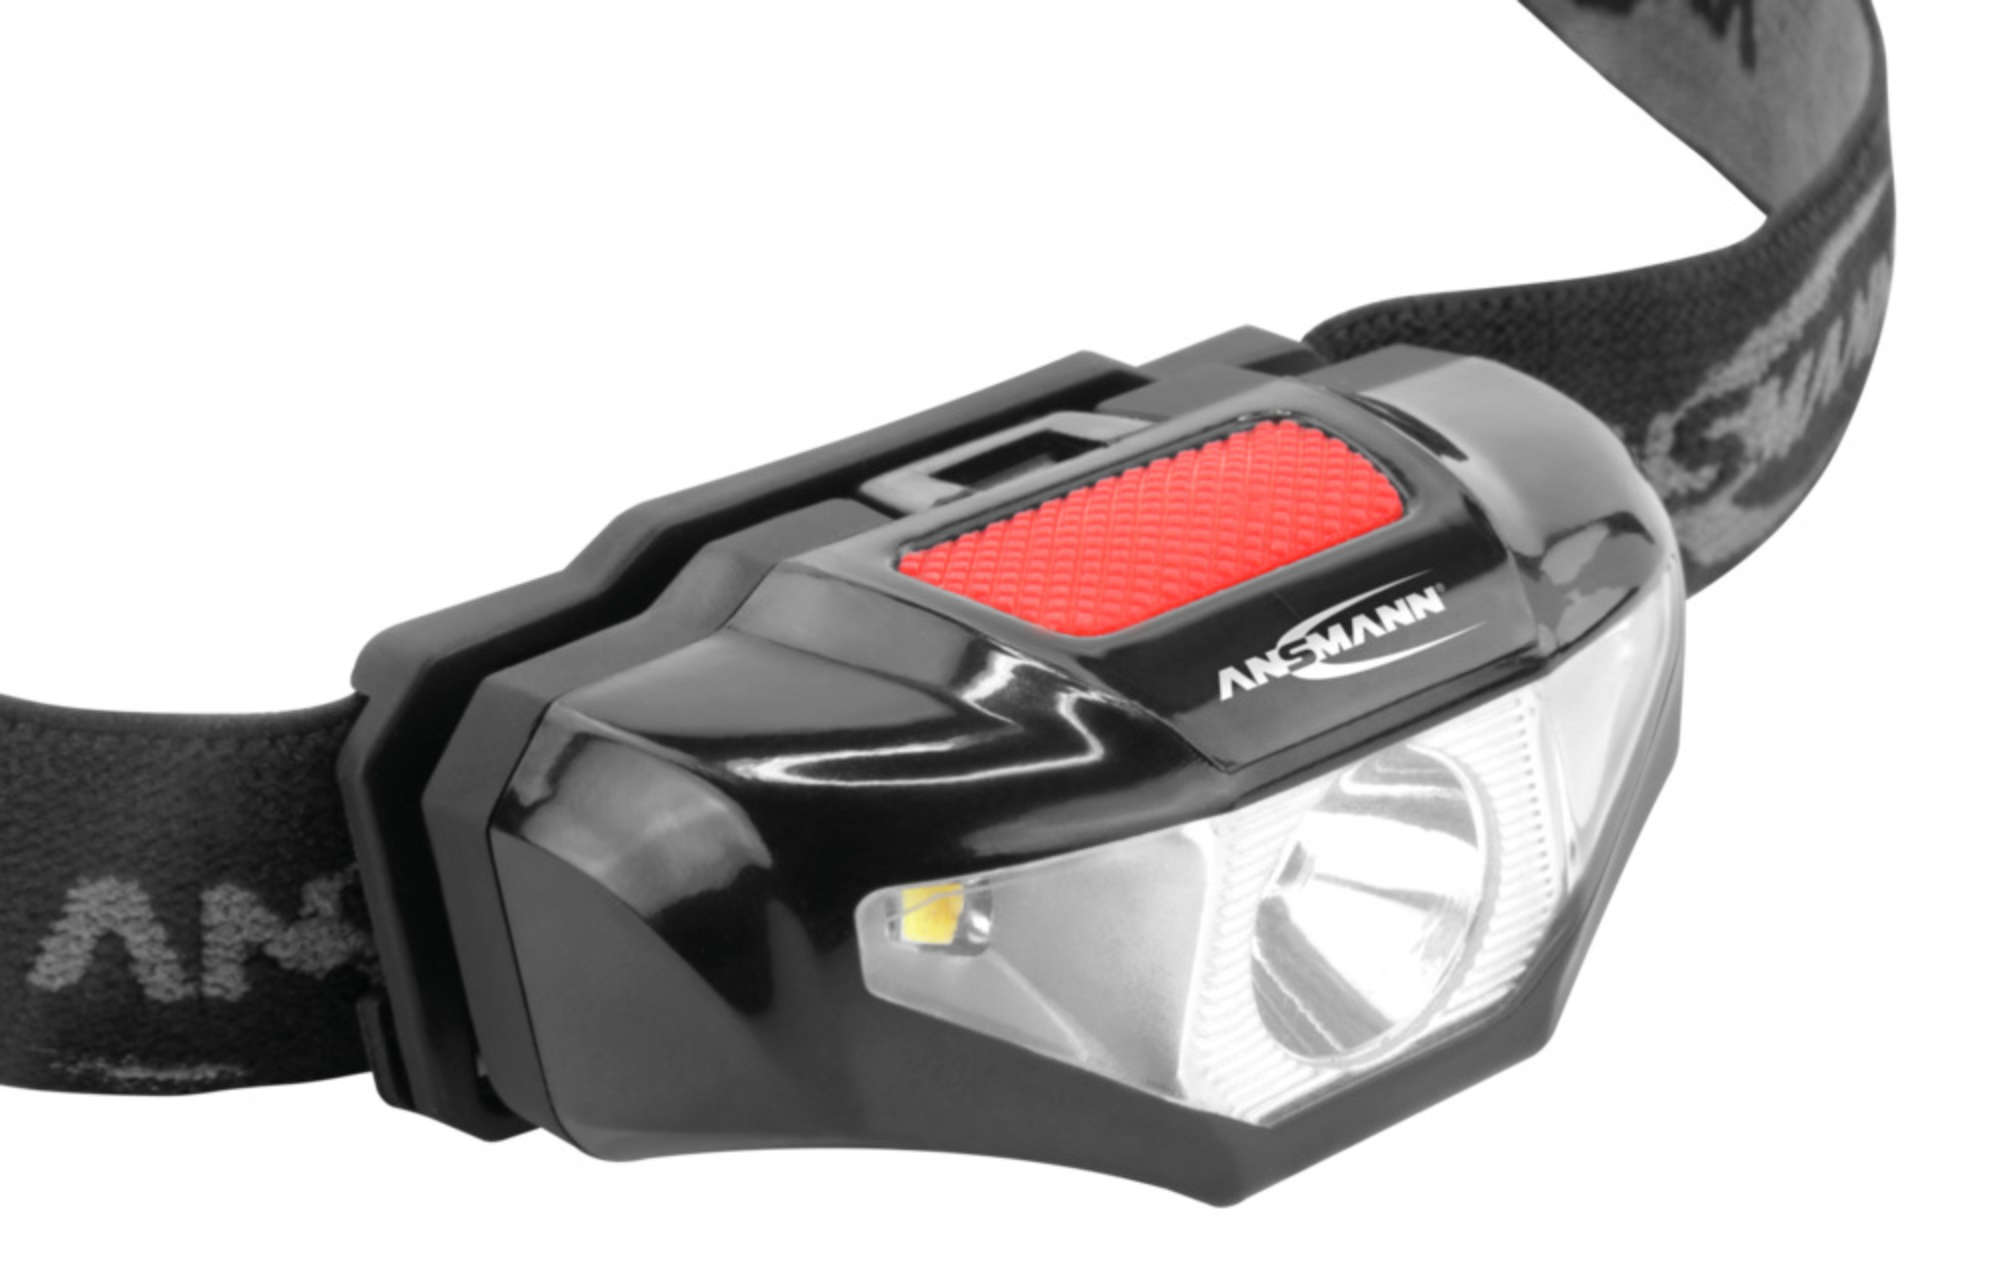 Headlight HD70B